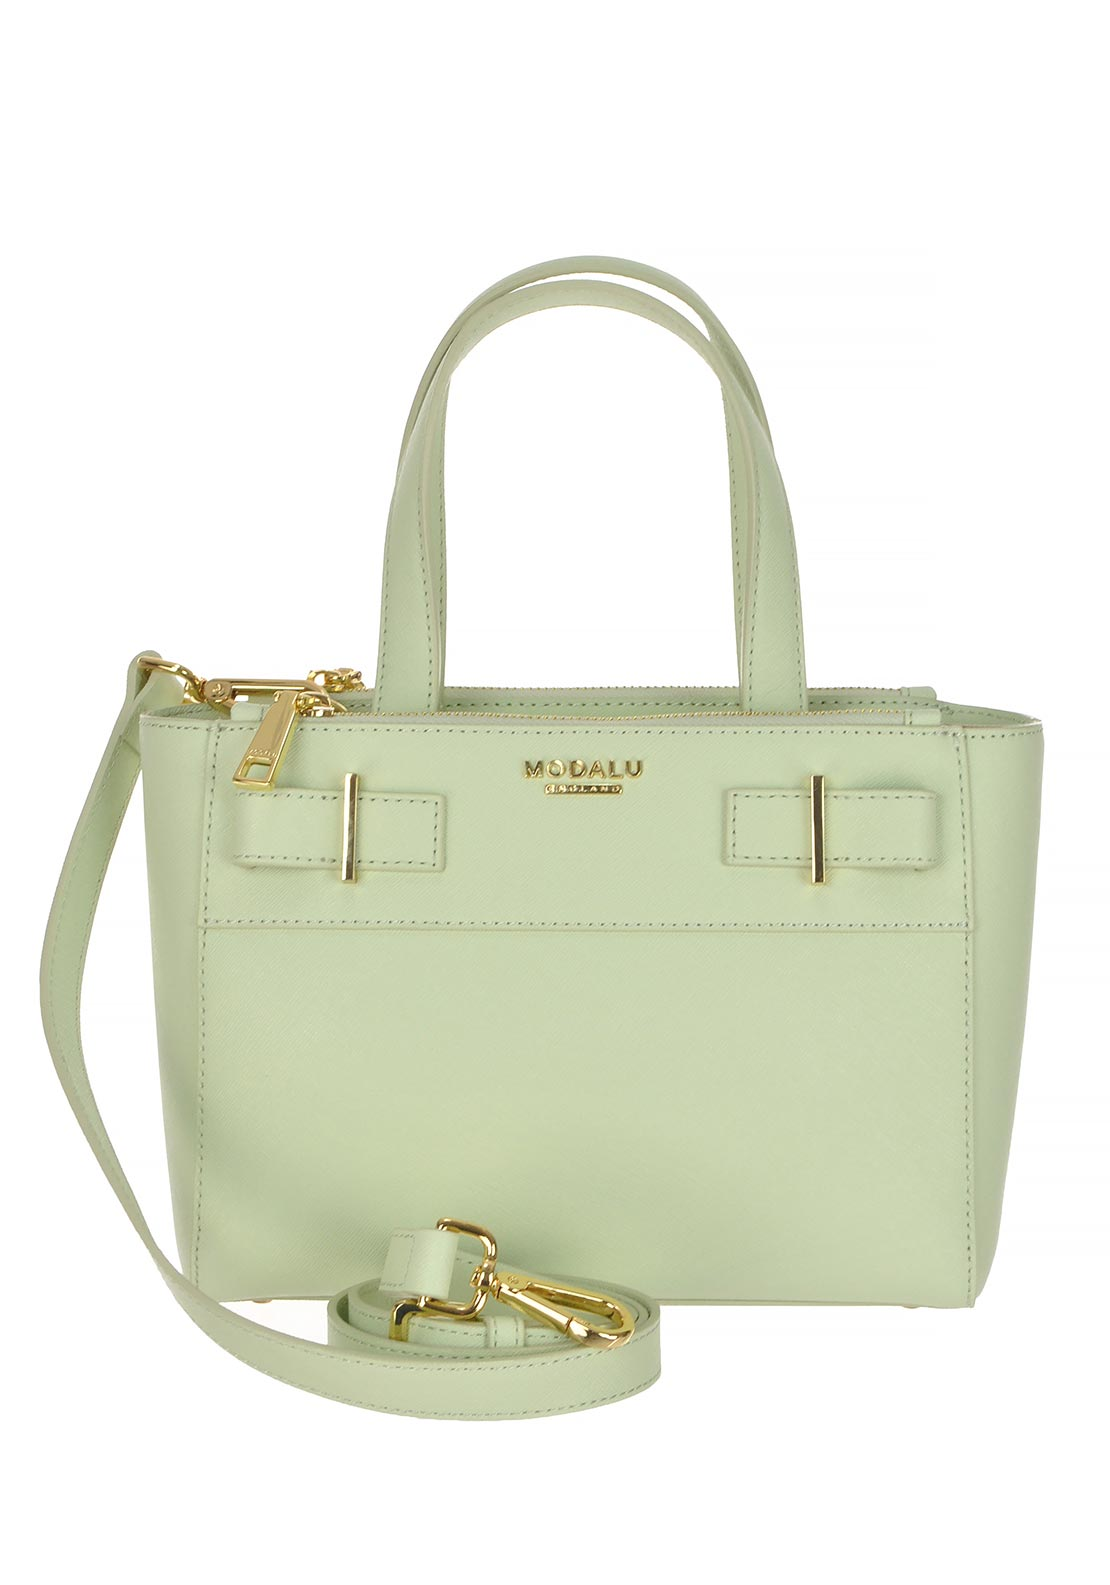 Modalu Belle Leather Mini Tote Grab Bag, Pistachio Green